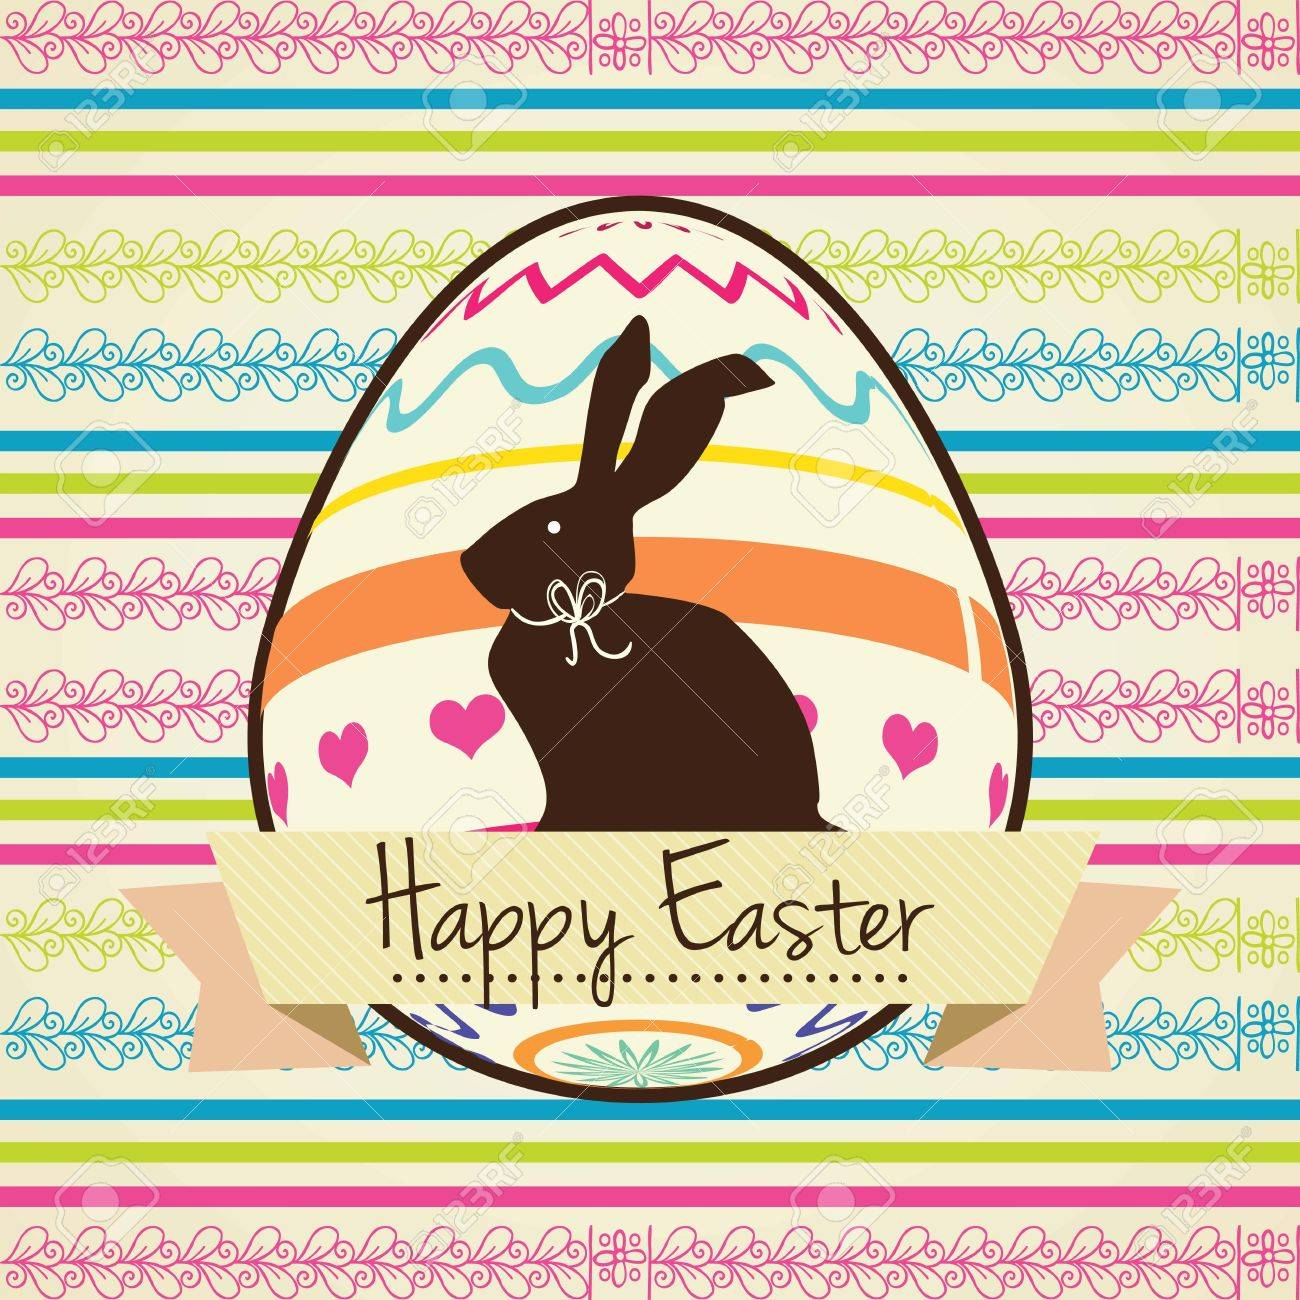 Colorful Happy Easter Card with bunny. Vector illustration. Stock Vector - 17734427